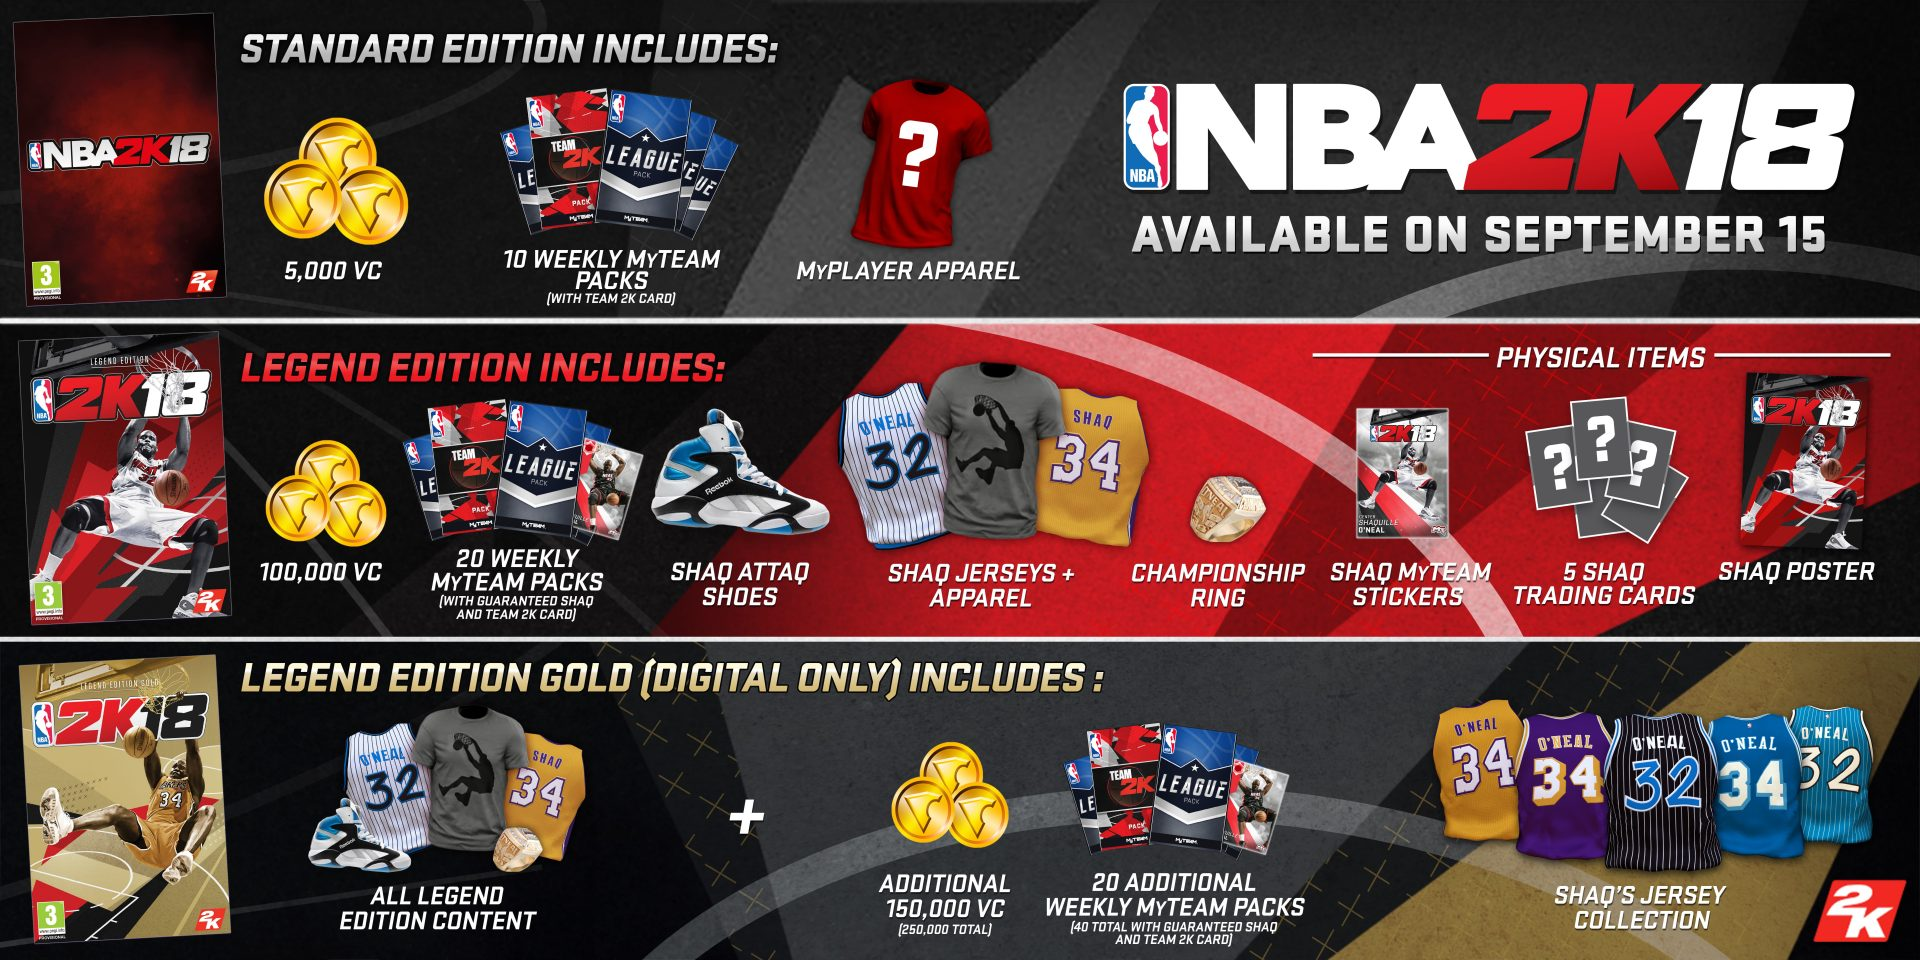 So Who's On The Cover Of NBA 2K18 Legend Edition?